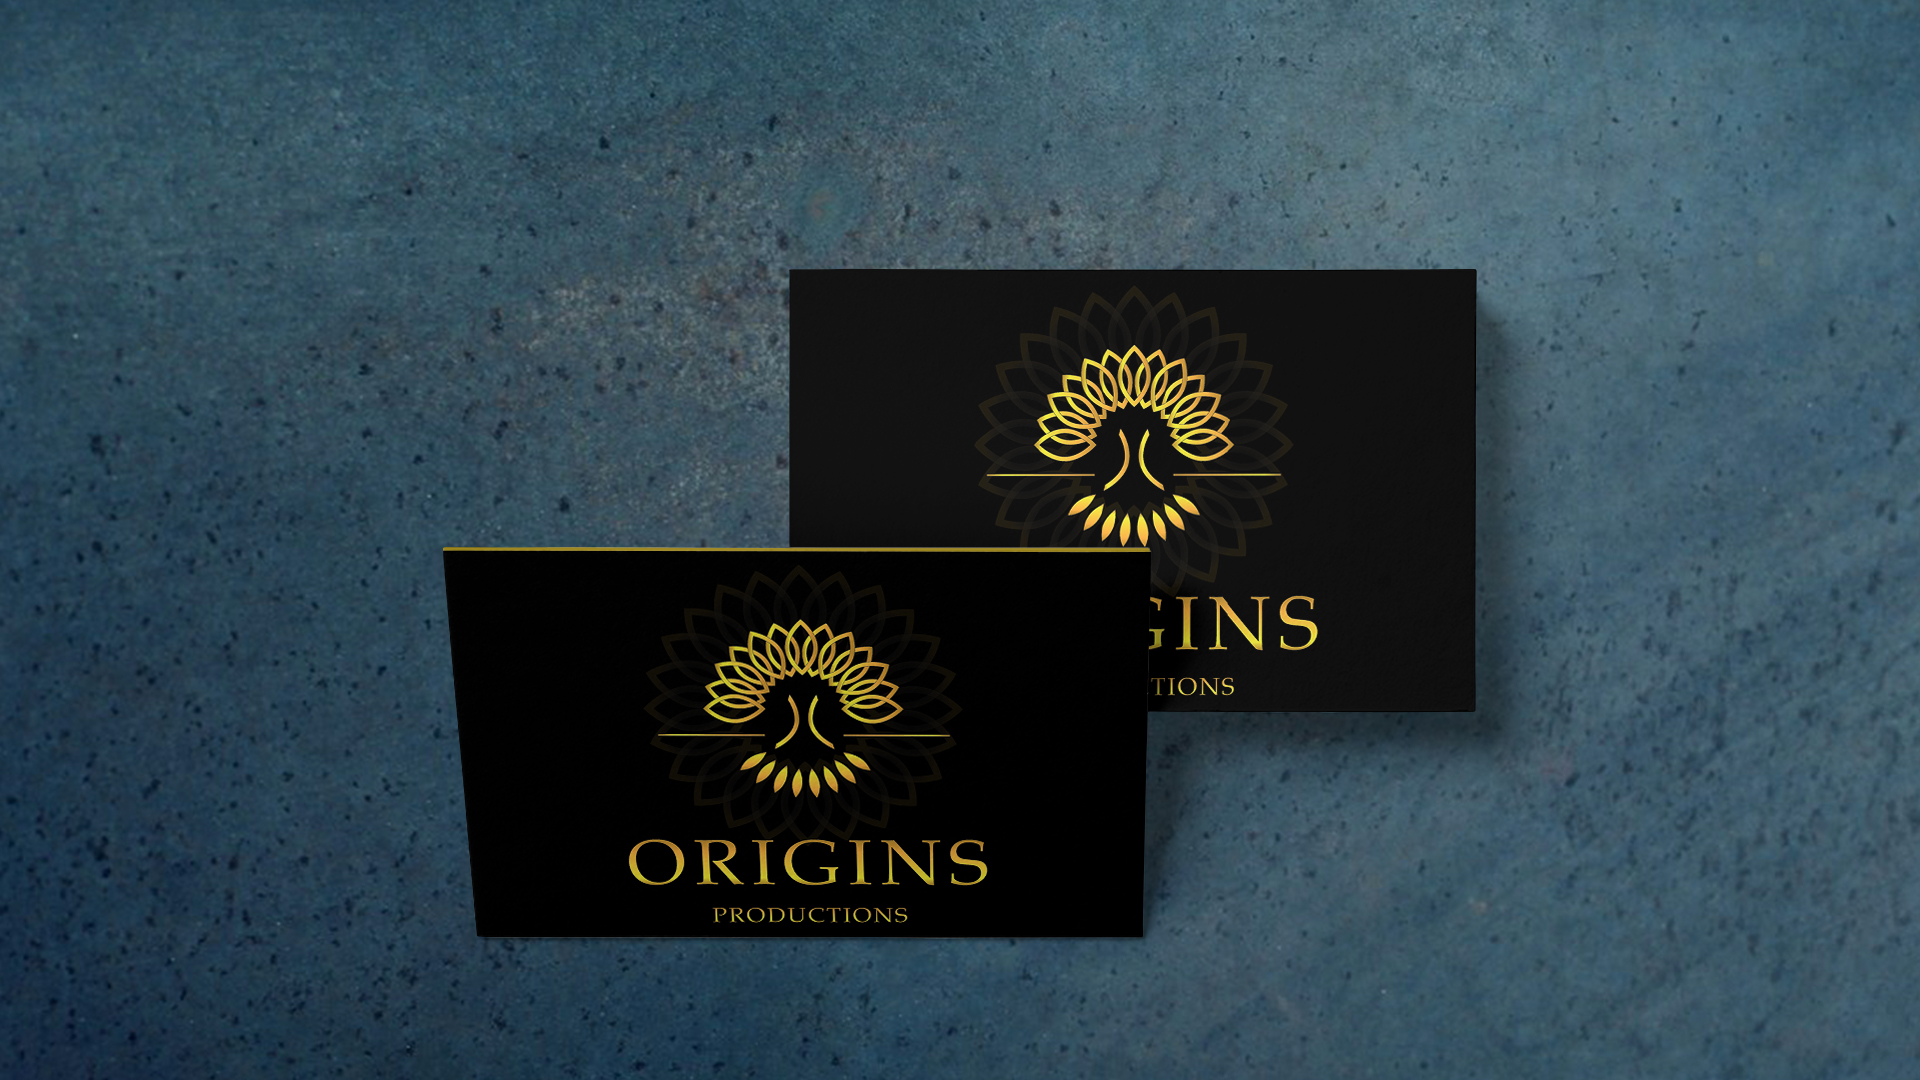 Origins Productions / Branding